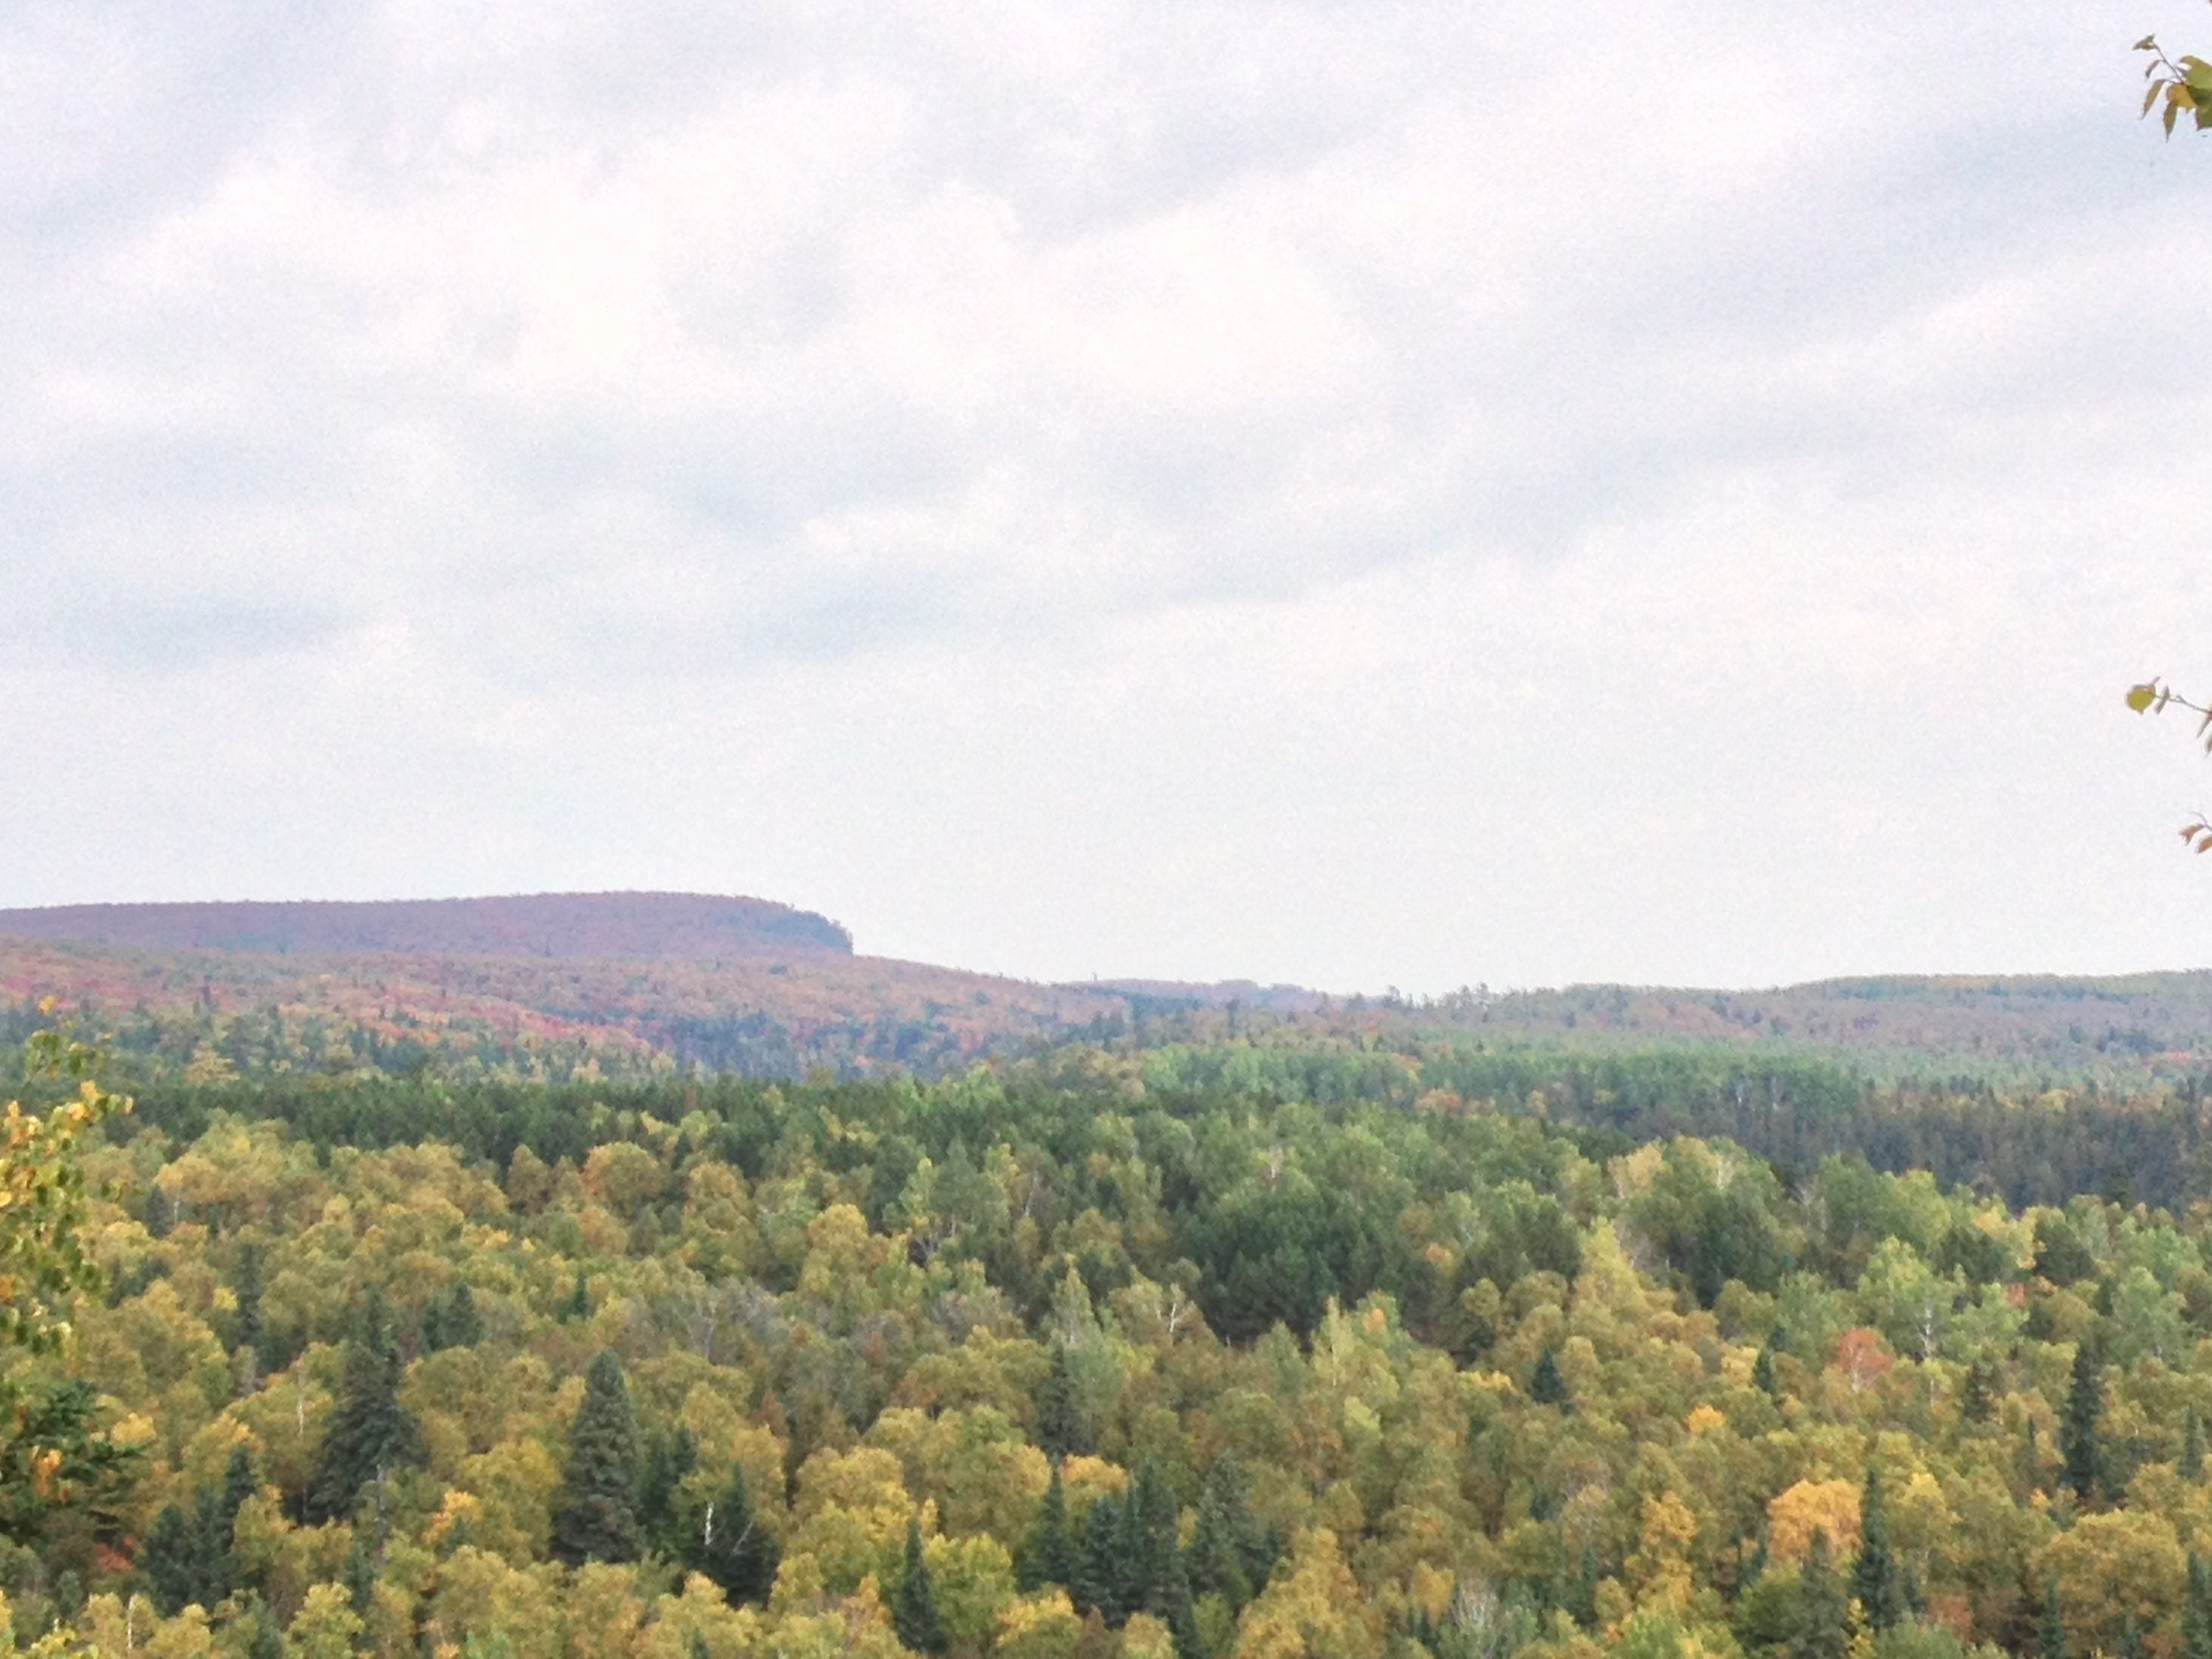 View from the lookout at Cascade River State Park